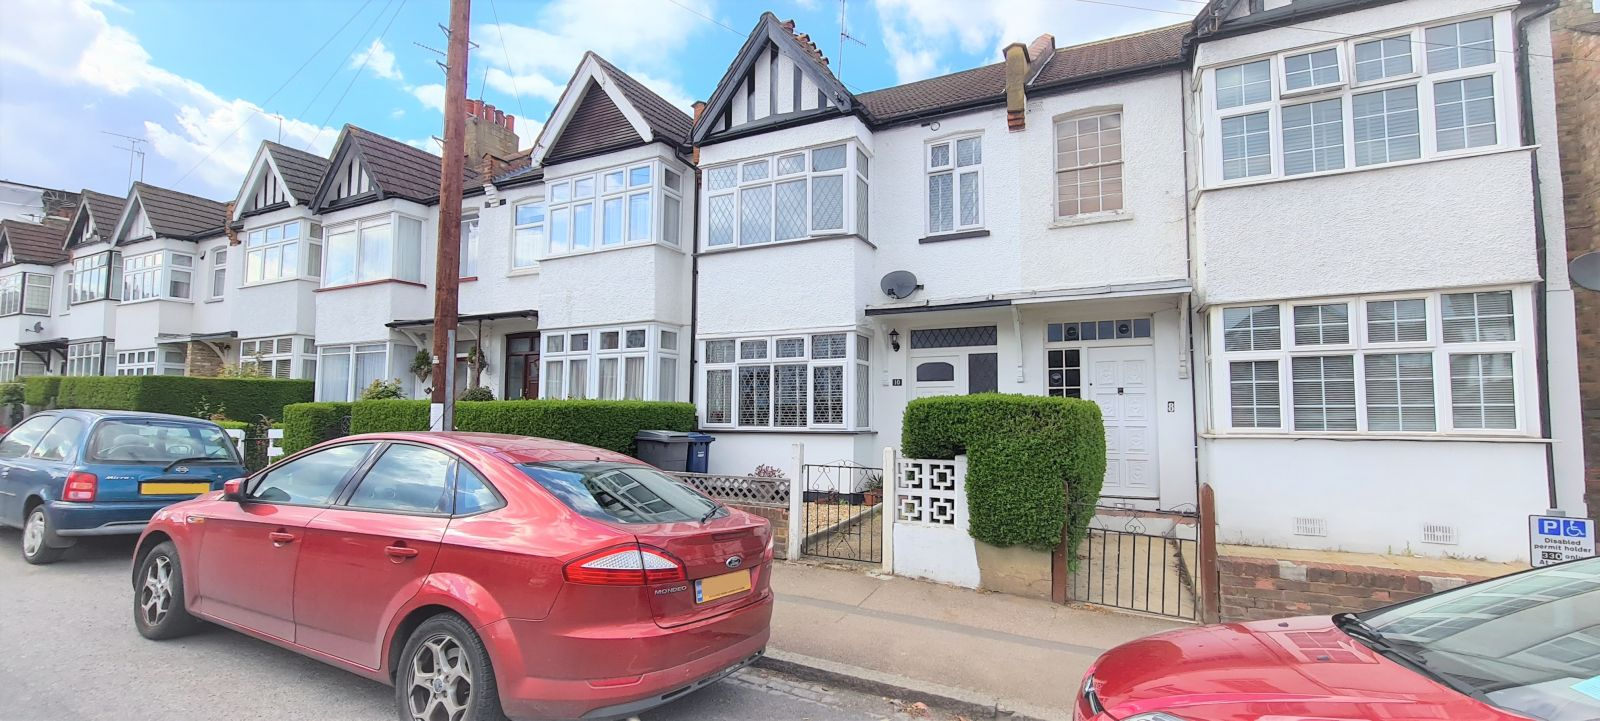 Property photo 1 of 22. 3 Bedroom Terraced House